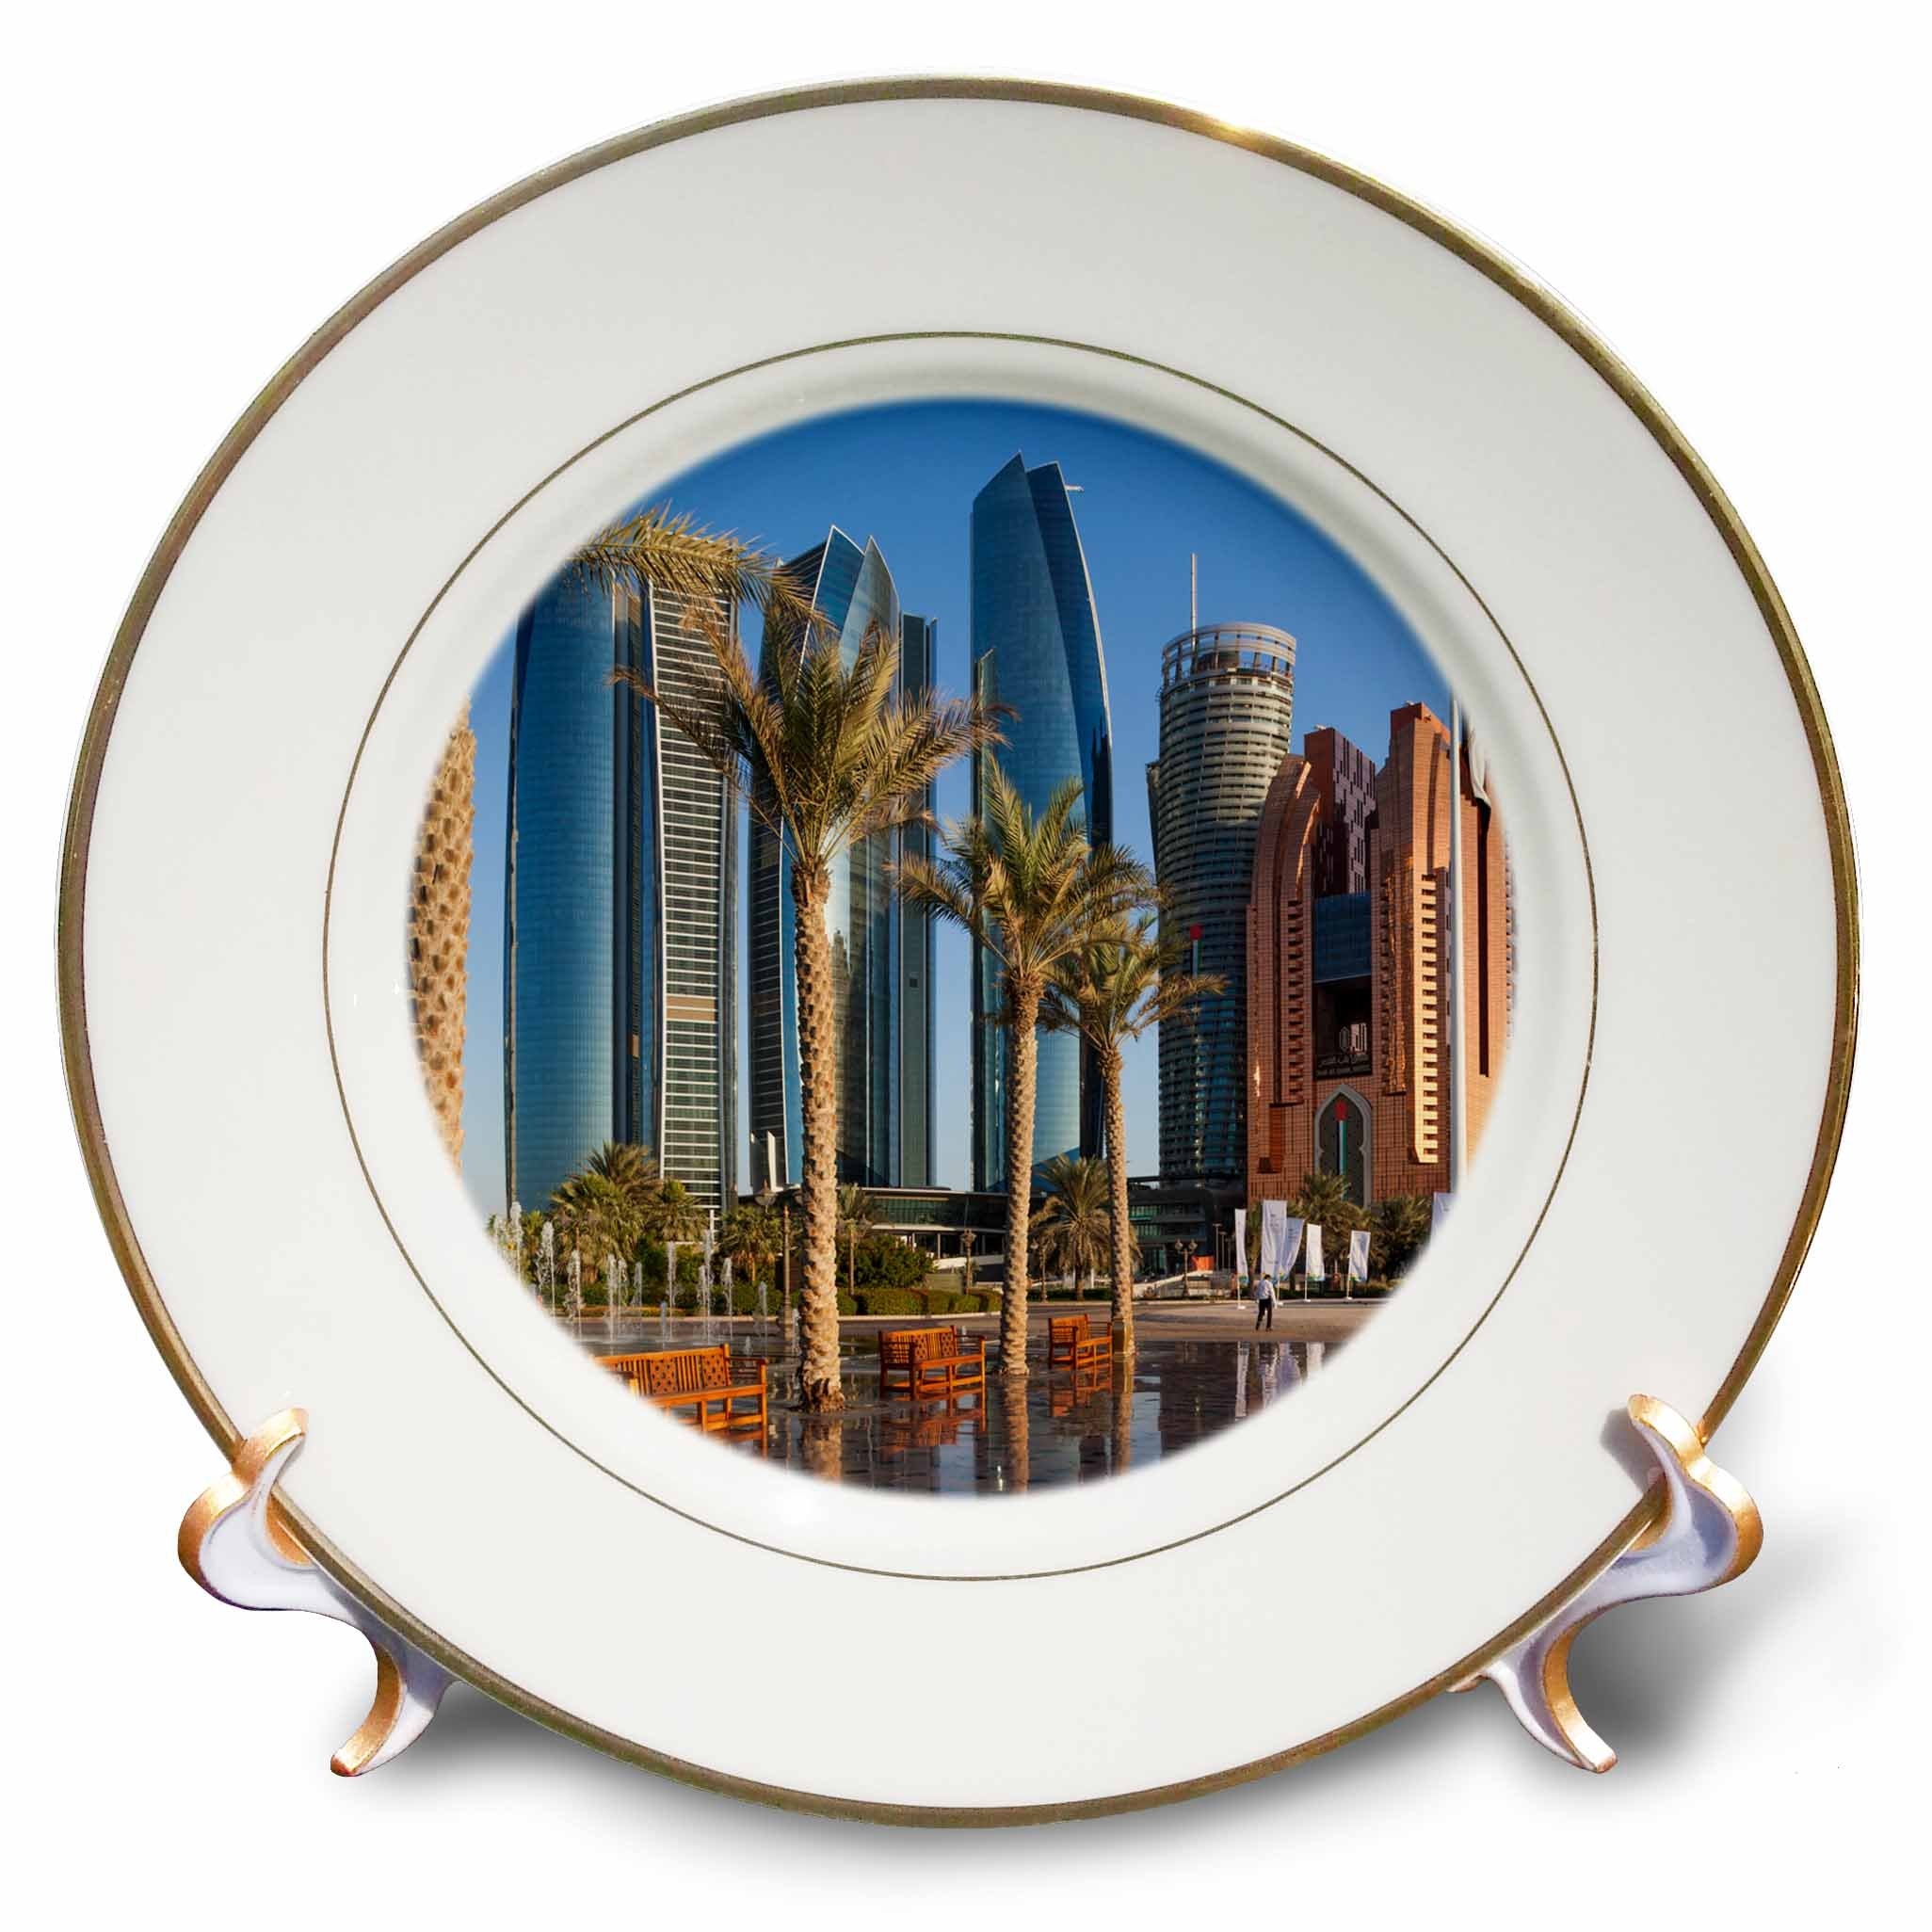 3dRose Danita Delimont - Cities - UAE, Abu Dhabi. Etihad Towers and Emirates Palace Hotel fountains - 8 inch Porcelain Plate (cp_277135_1)